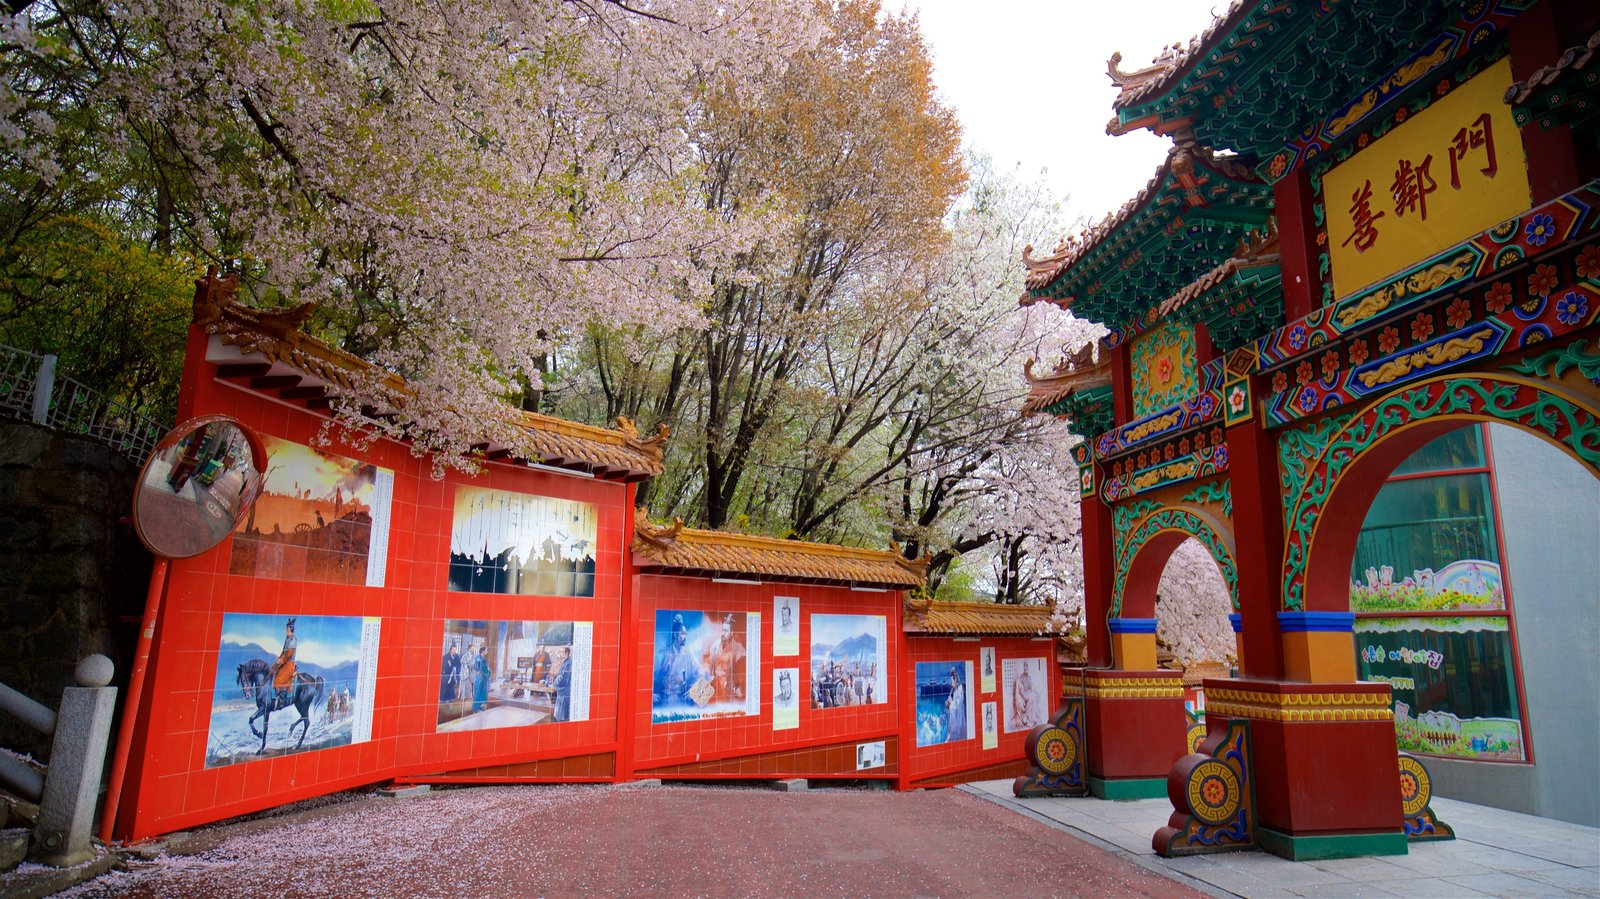 Chinatown which includes a garden, wildflowers and heritage elements